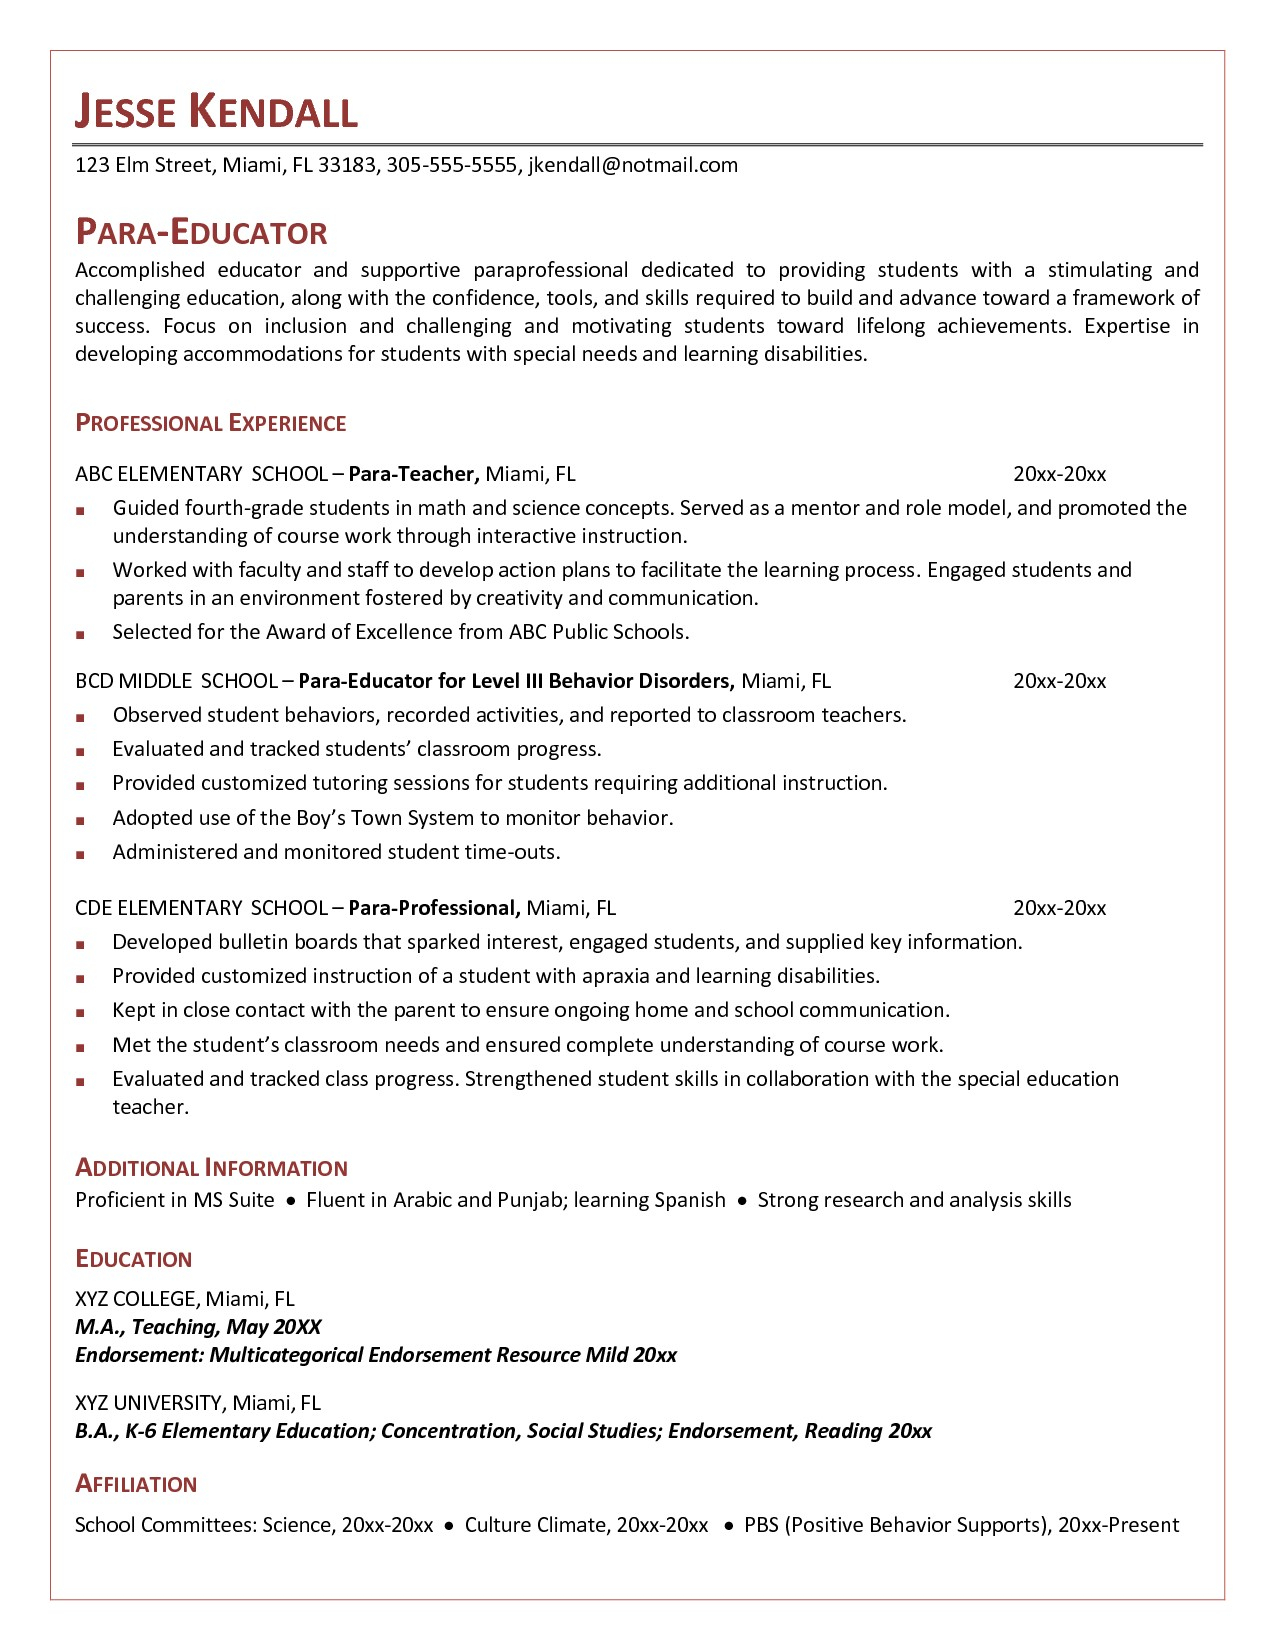 Paraprofessional Resume Template - Paraeducator Resume Template Archives Jaowebdesign New